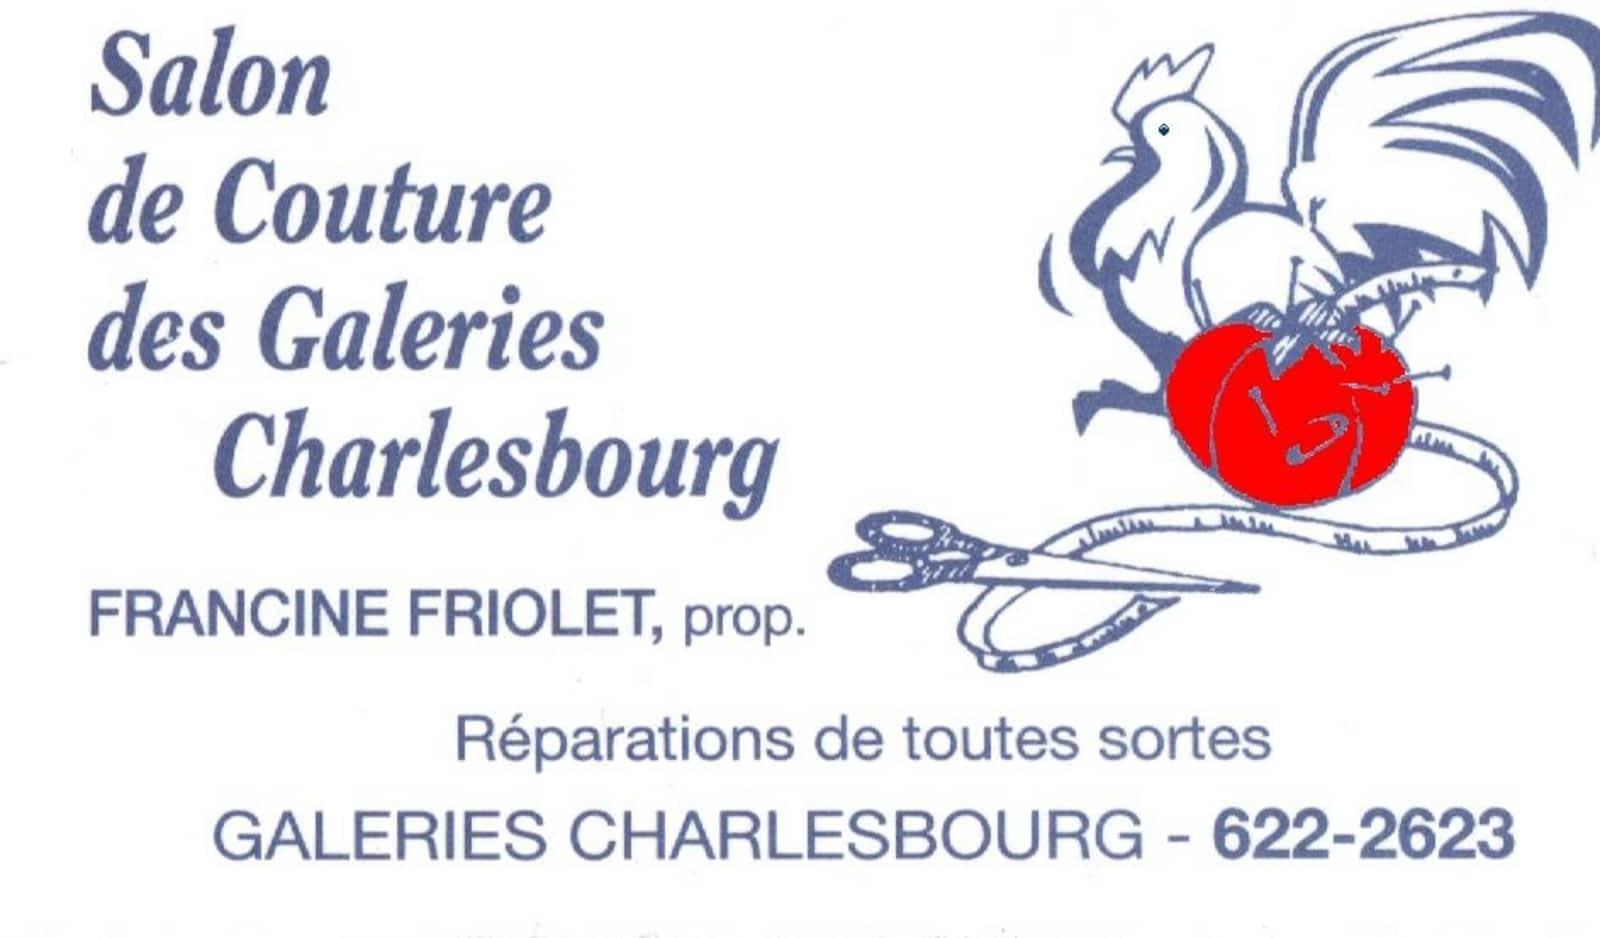 Salon De Couture Des Galeries Charlesbourg Opening Hours